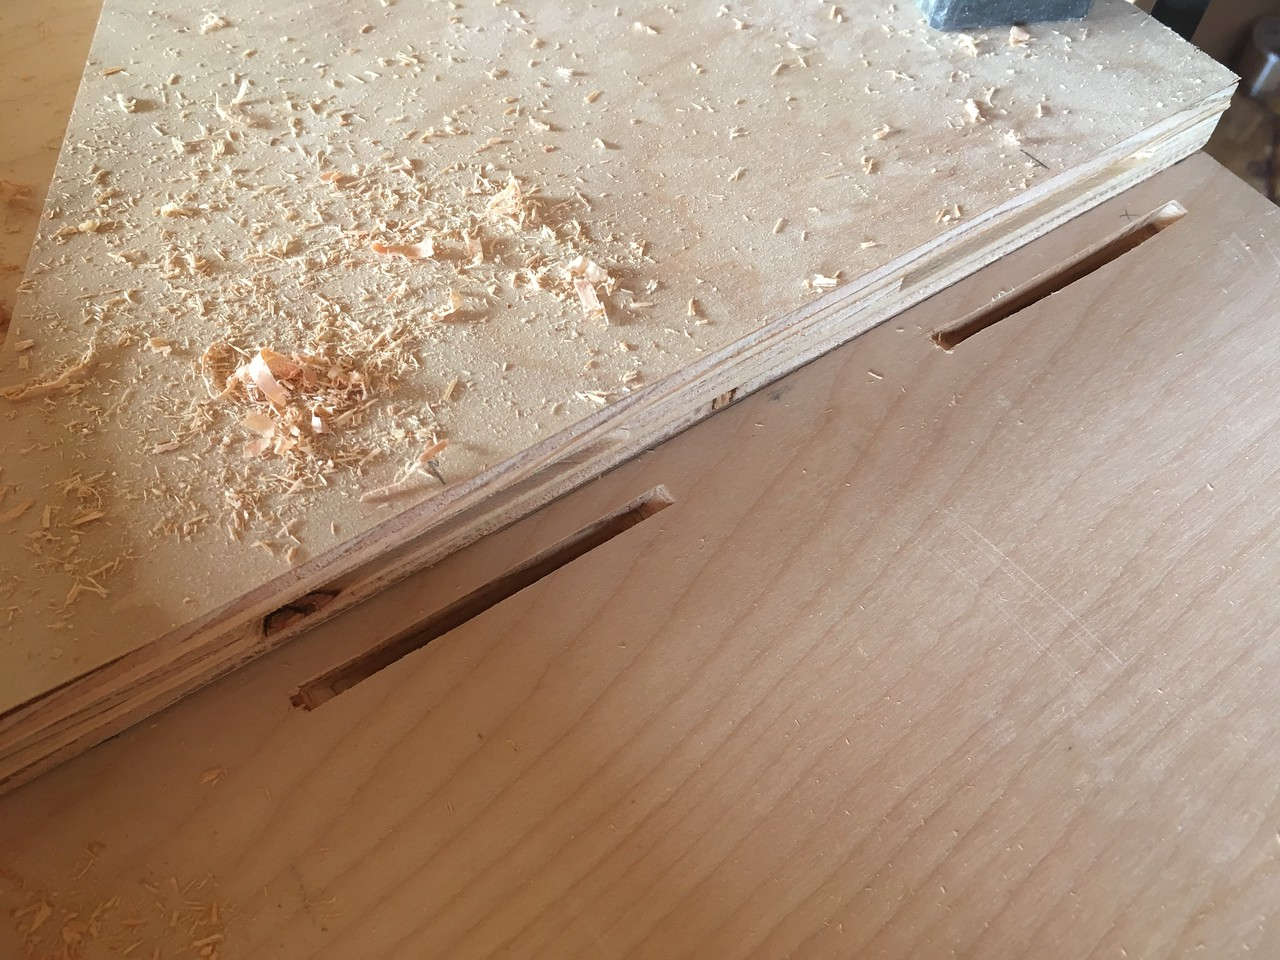 Biscuits for front cabinets